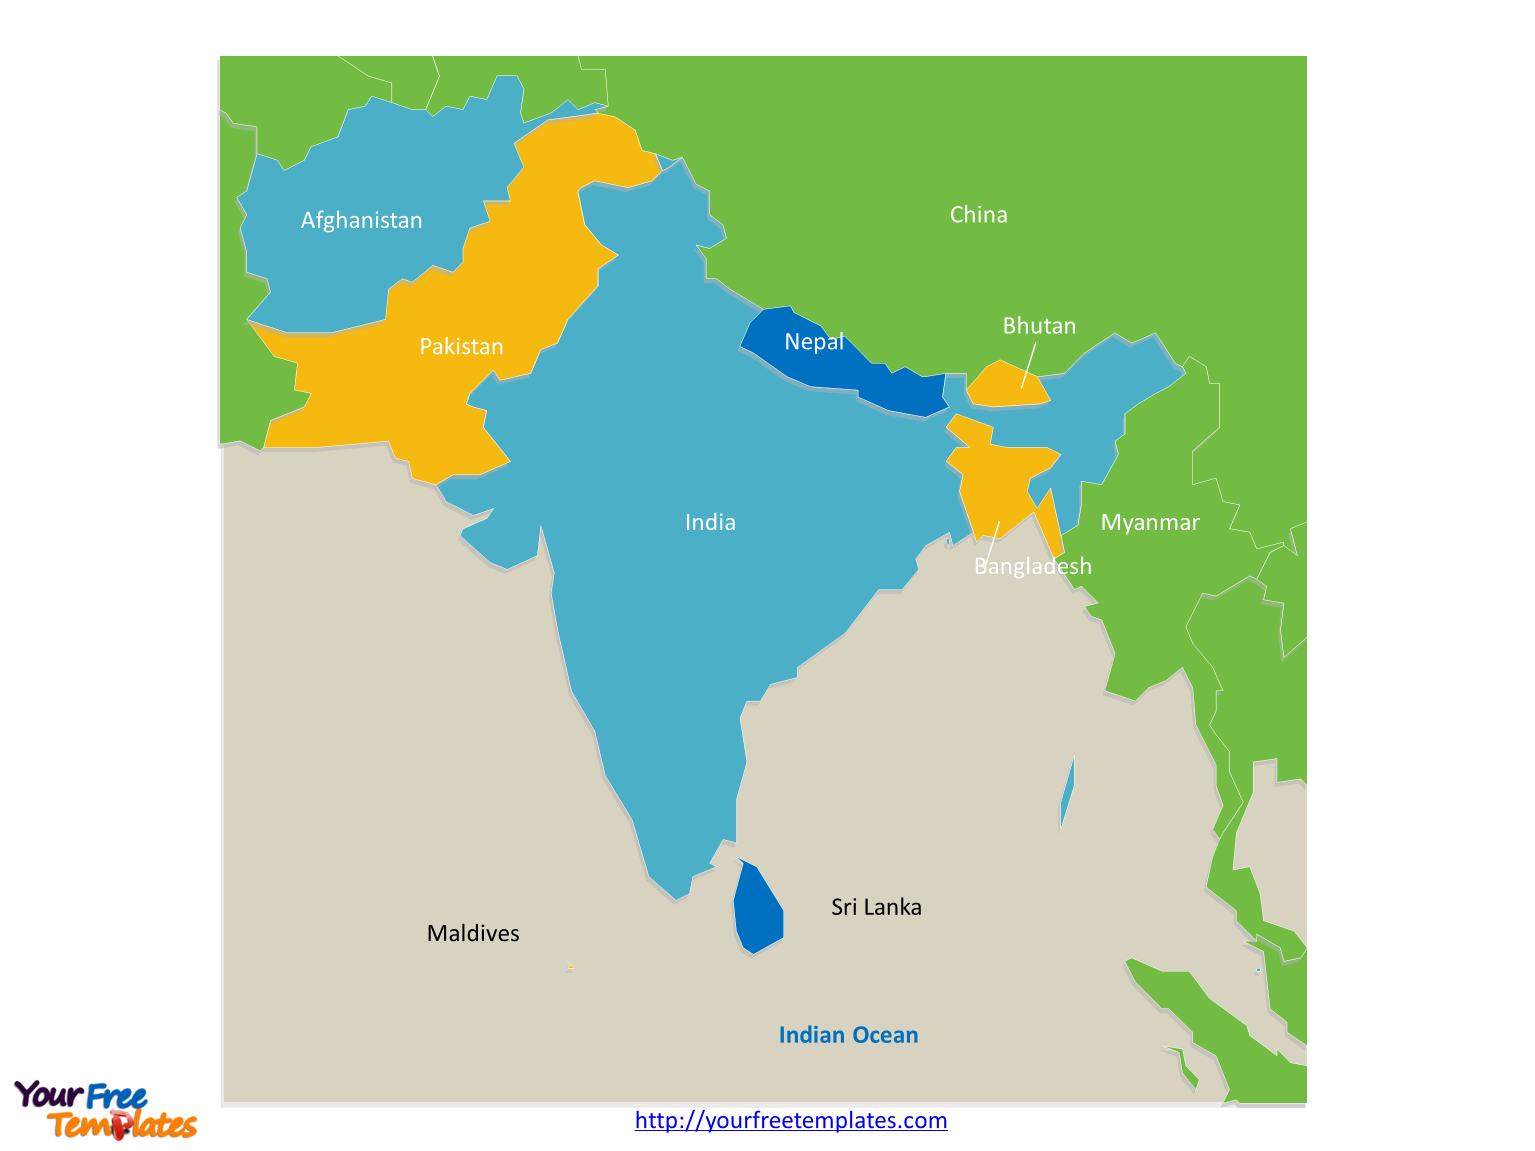 Free south asia editable map free powerpoint templates south asia outline map labeled with country names gumiabroncs Choice Image